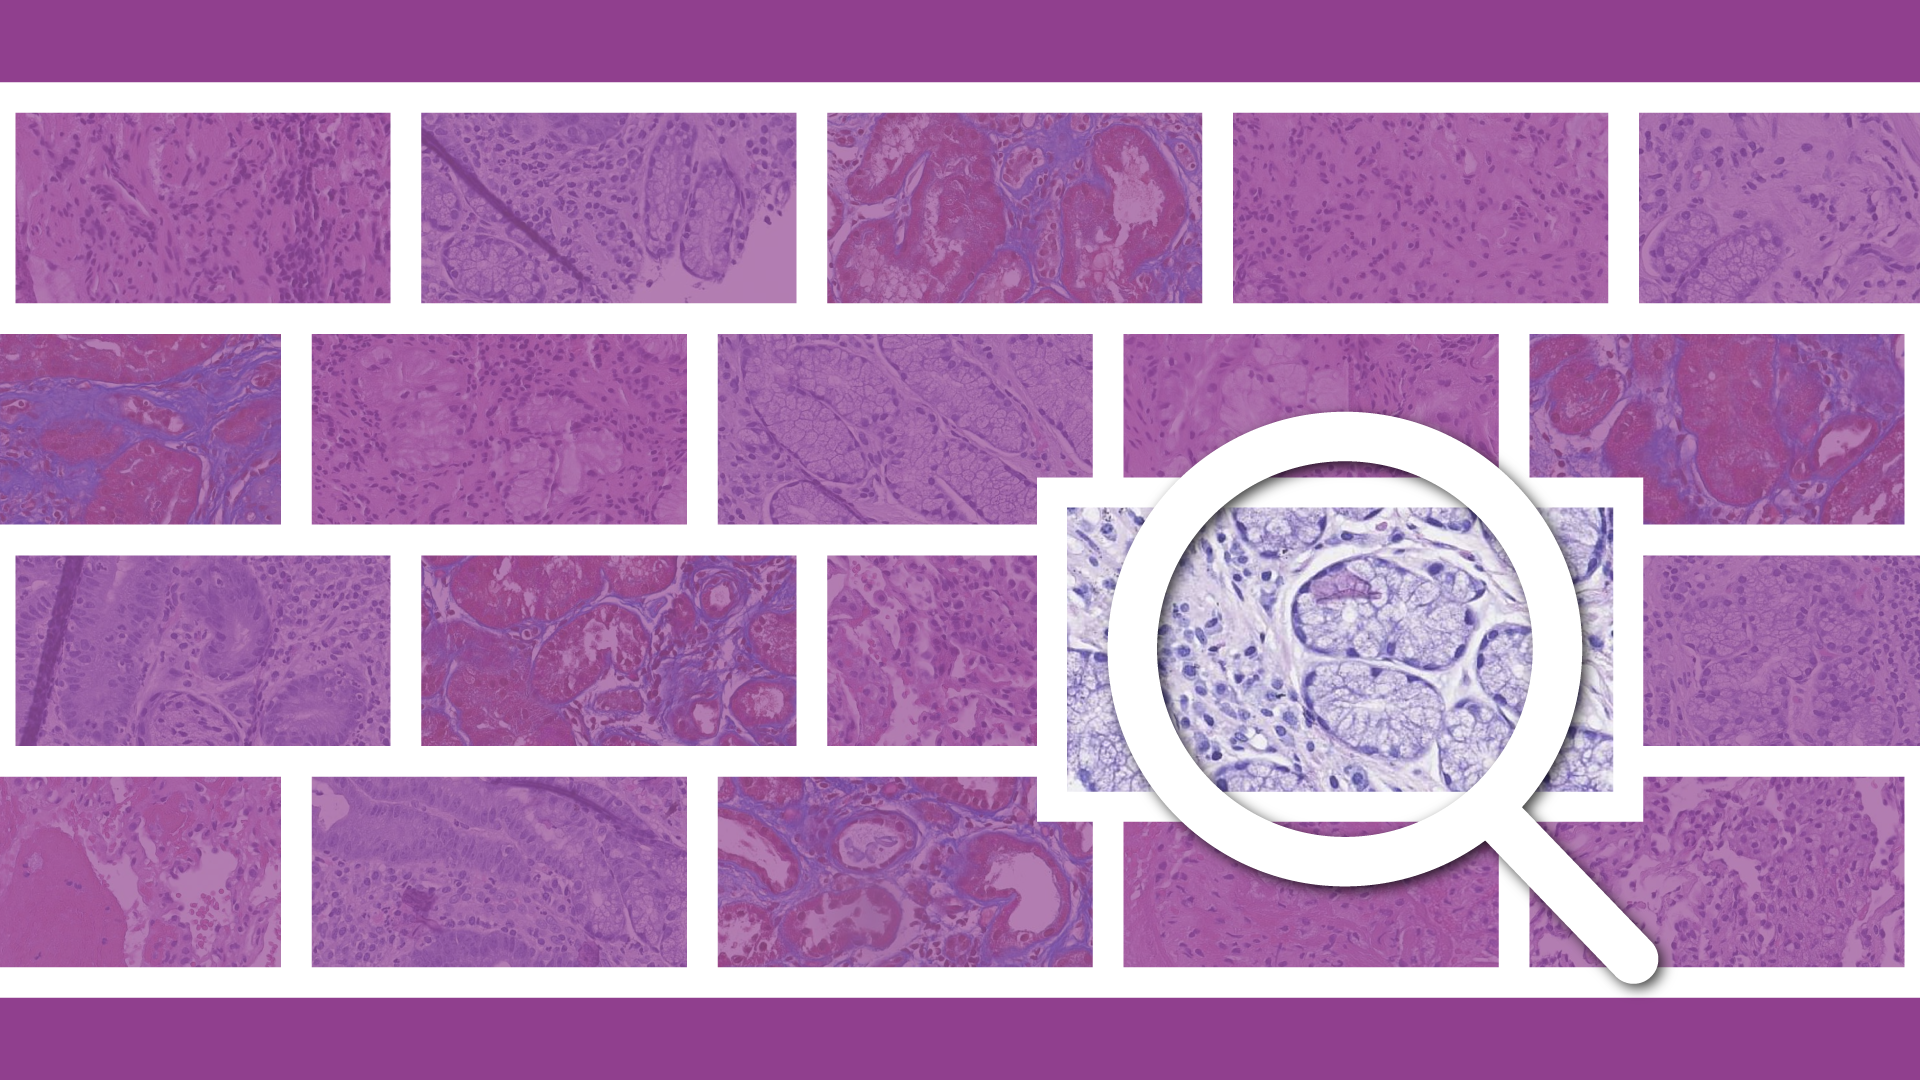 Empowering the Future of Remote Pathology with Image Search